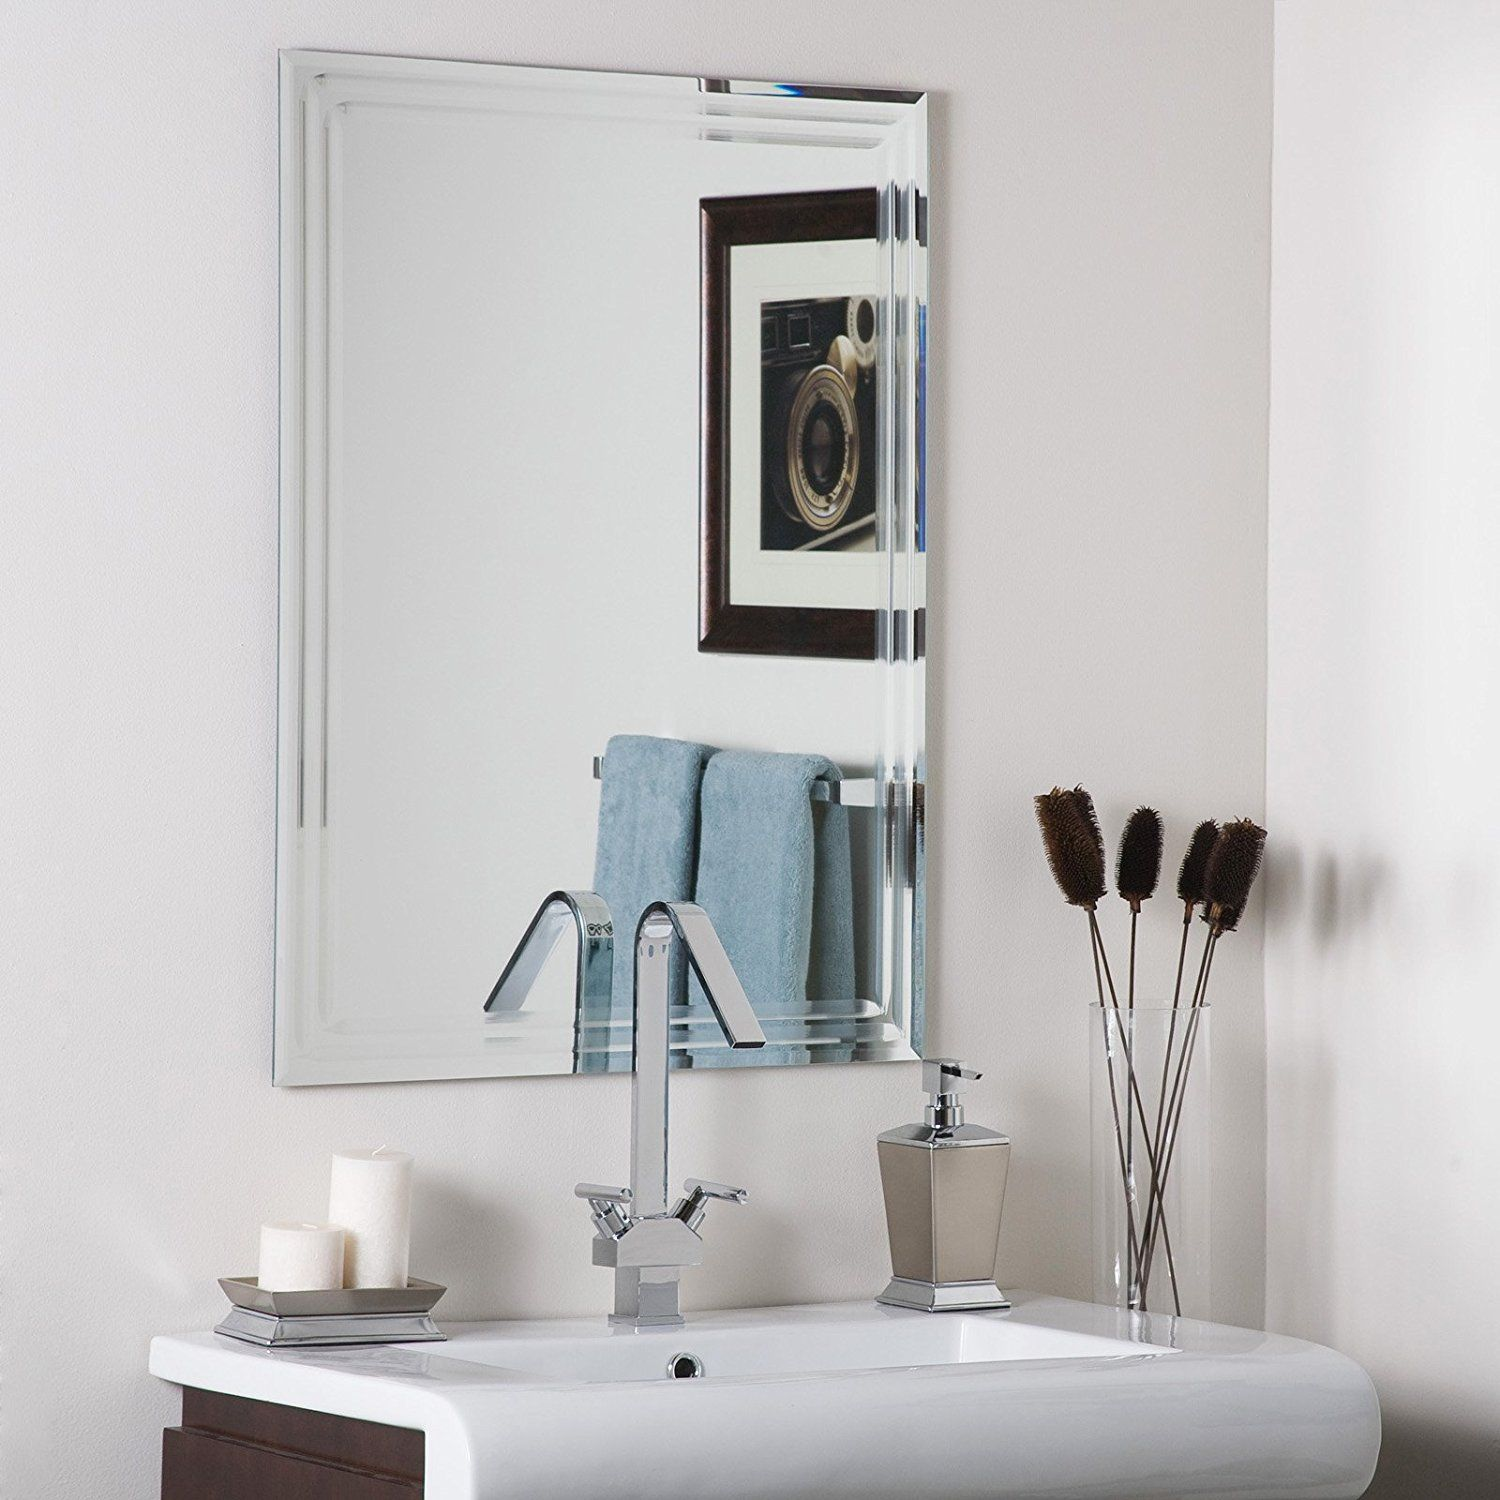 frameless beveled mirror. Amazon.com: Decor Wonderland Frameless Tri Bevel Wall Mirror - 23.5W X 31.5 Beveled